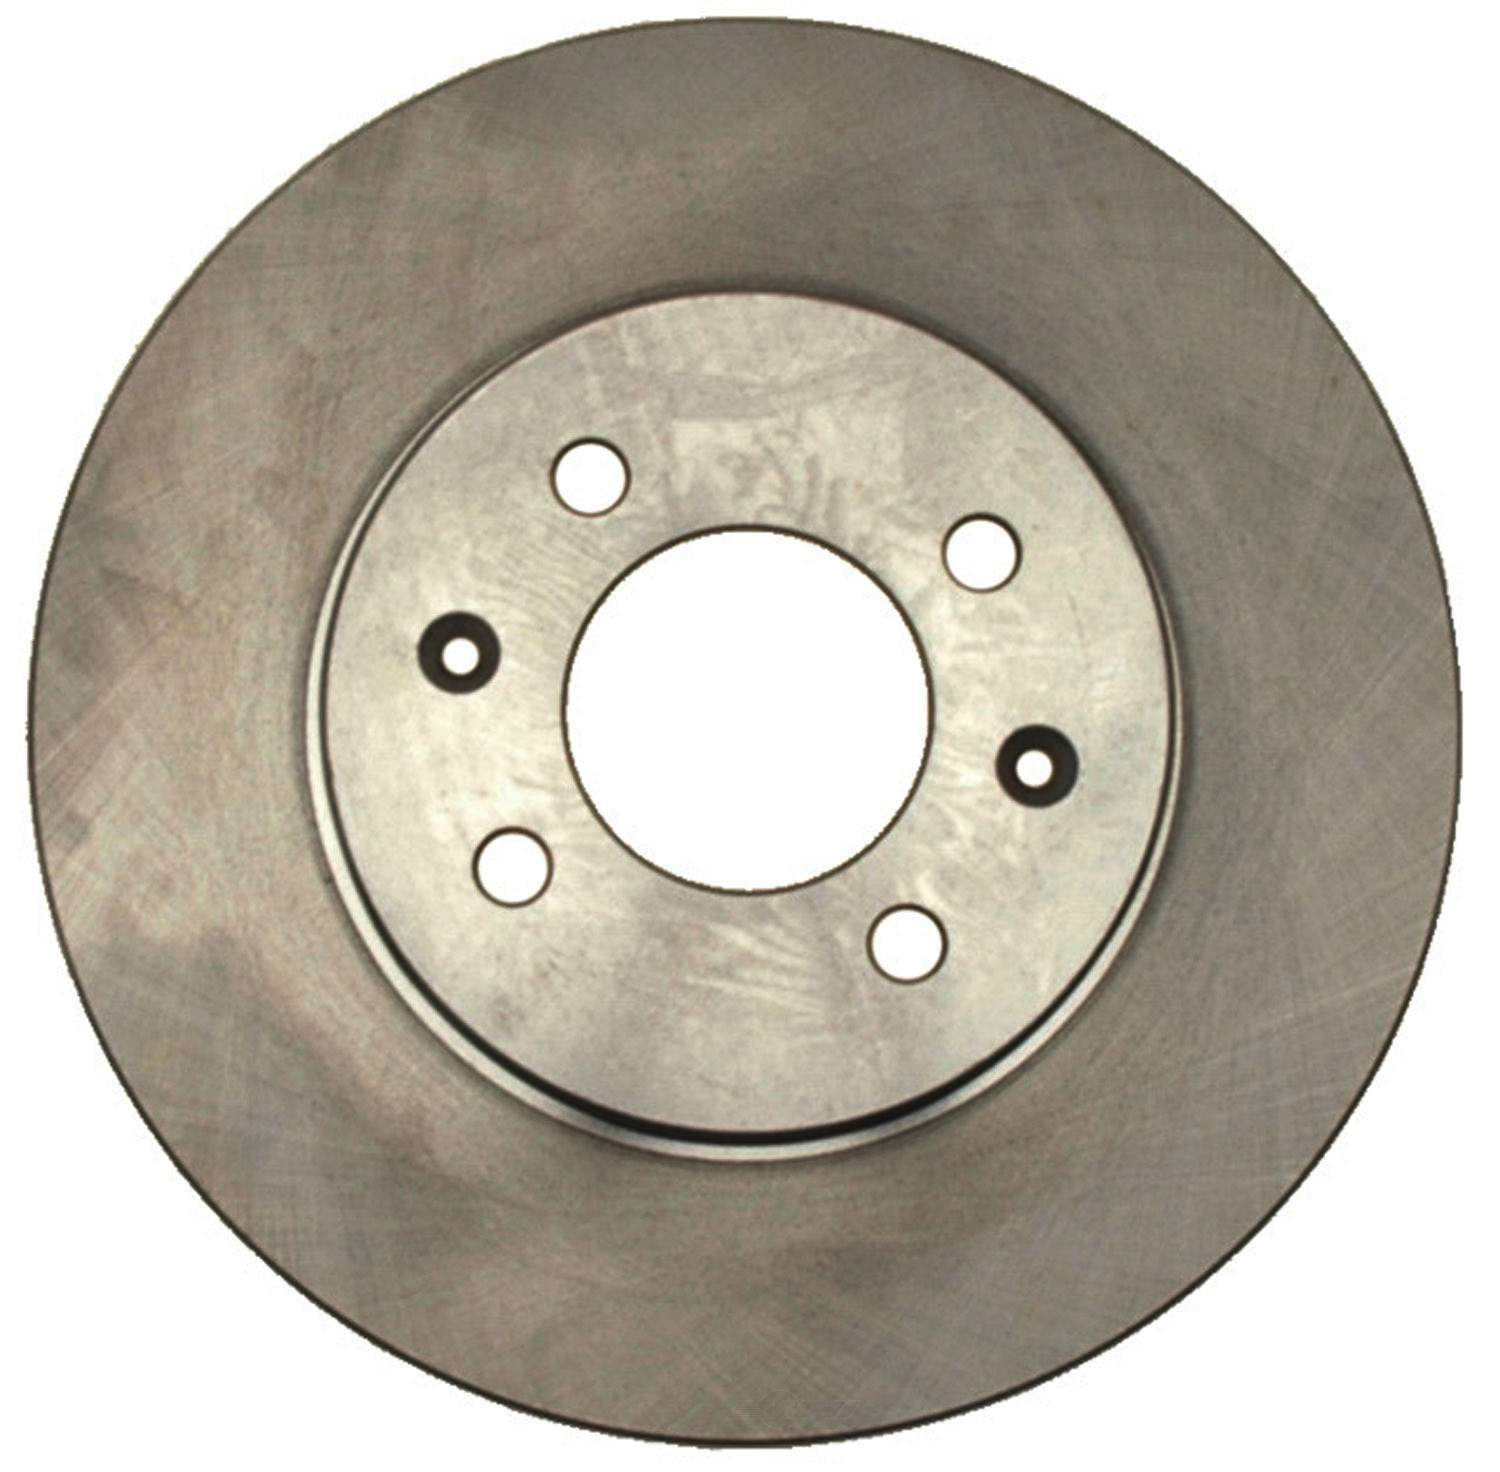 ACDELCO ADVANTAGE - Non-Coated Disc Brake Rotor - DCD 18A367A